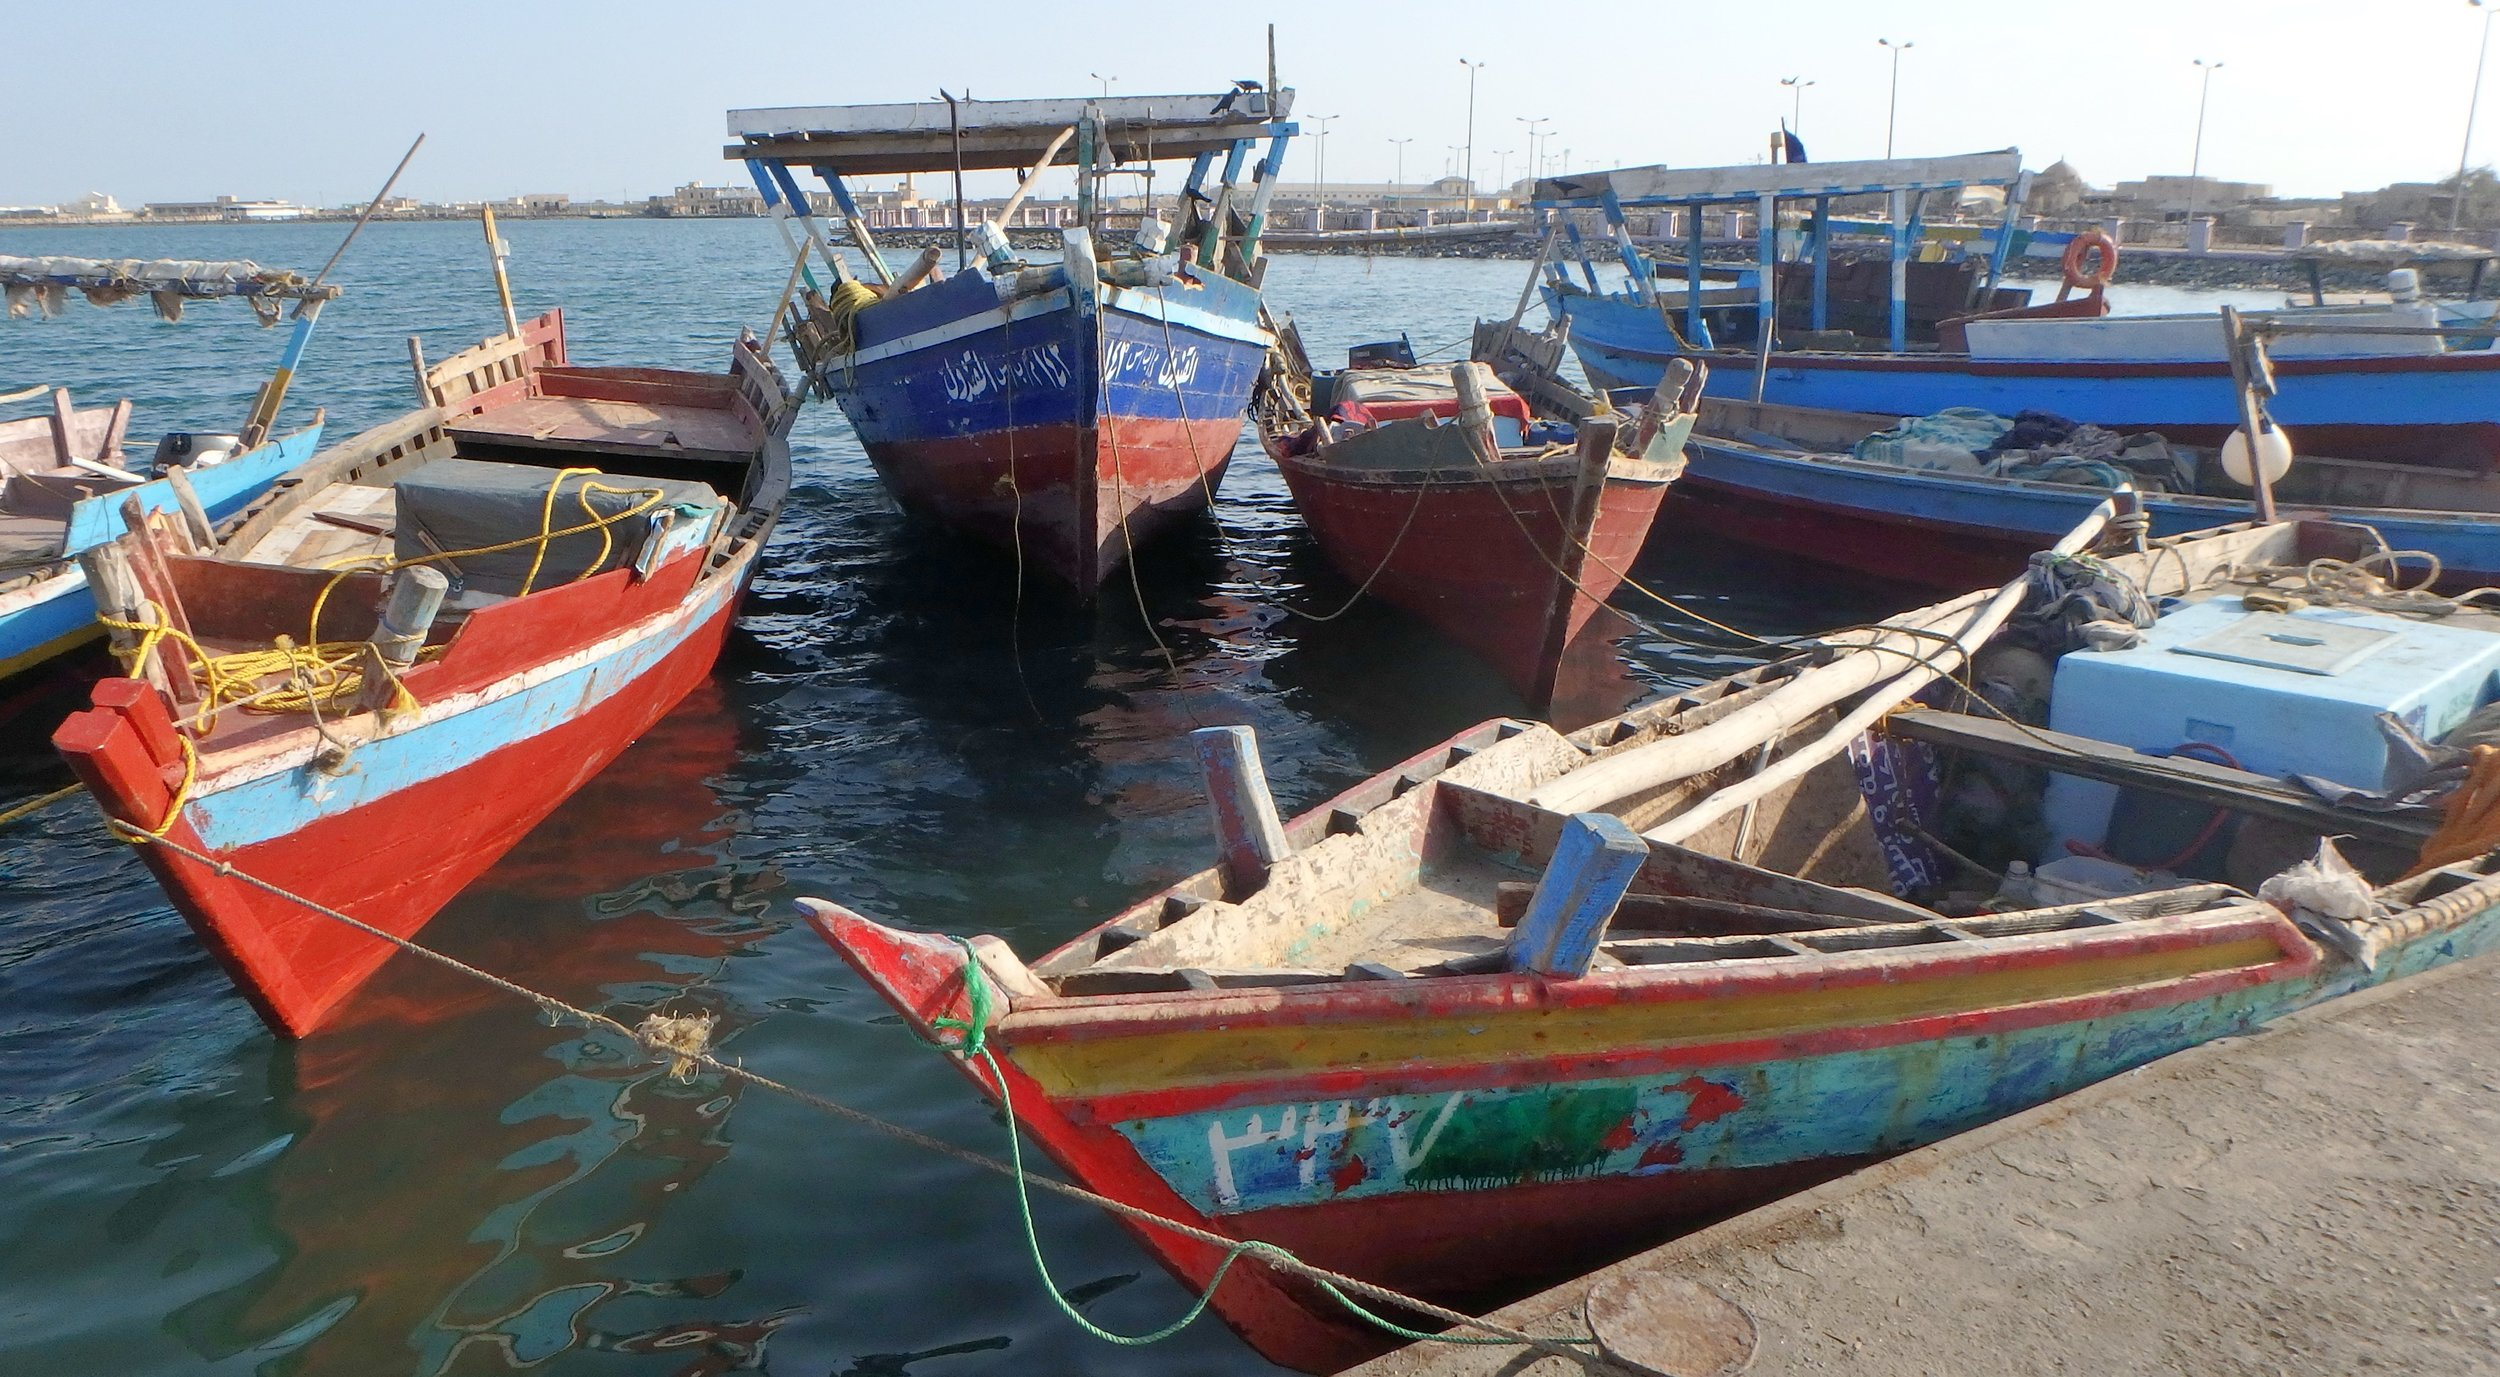 Beautiful boats in Suakin.